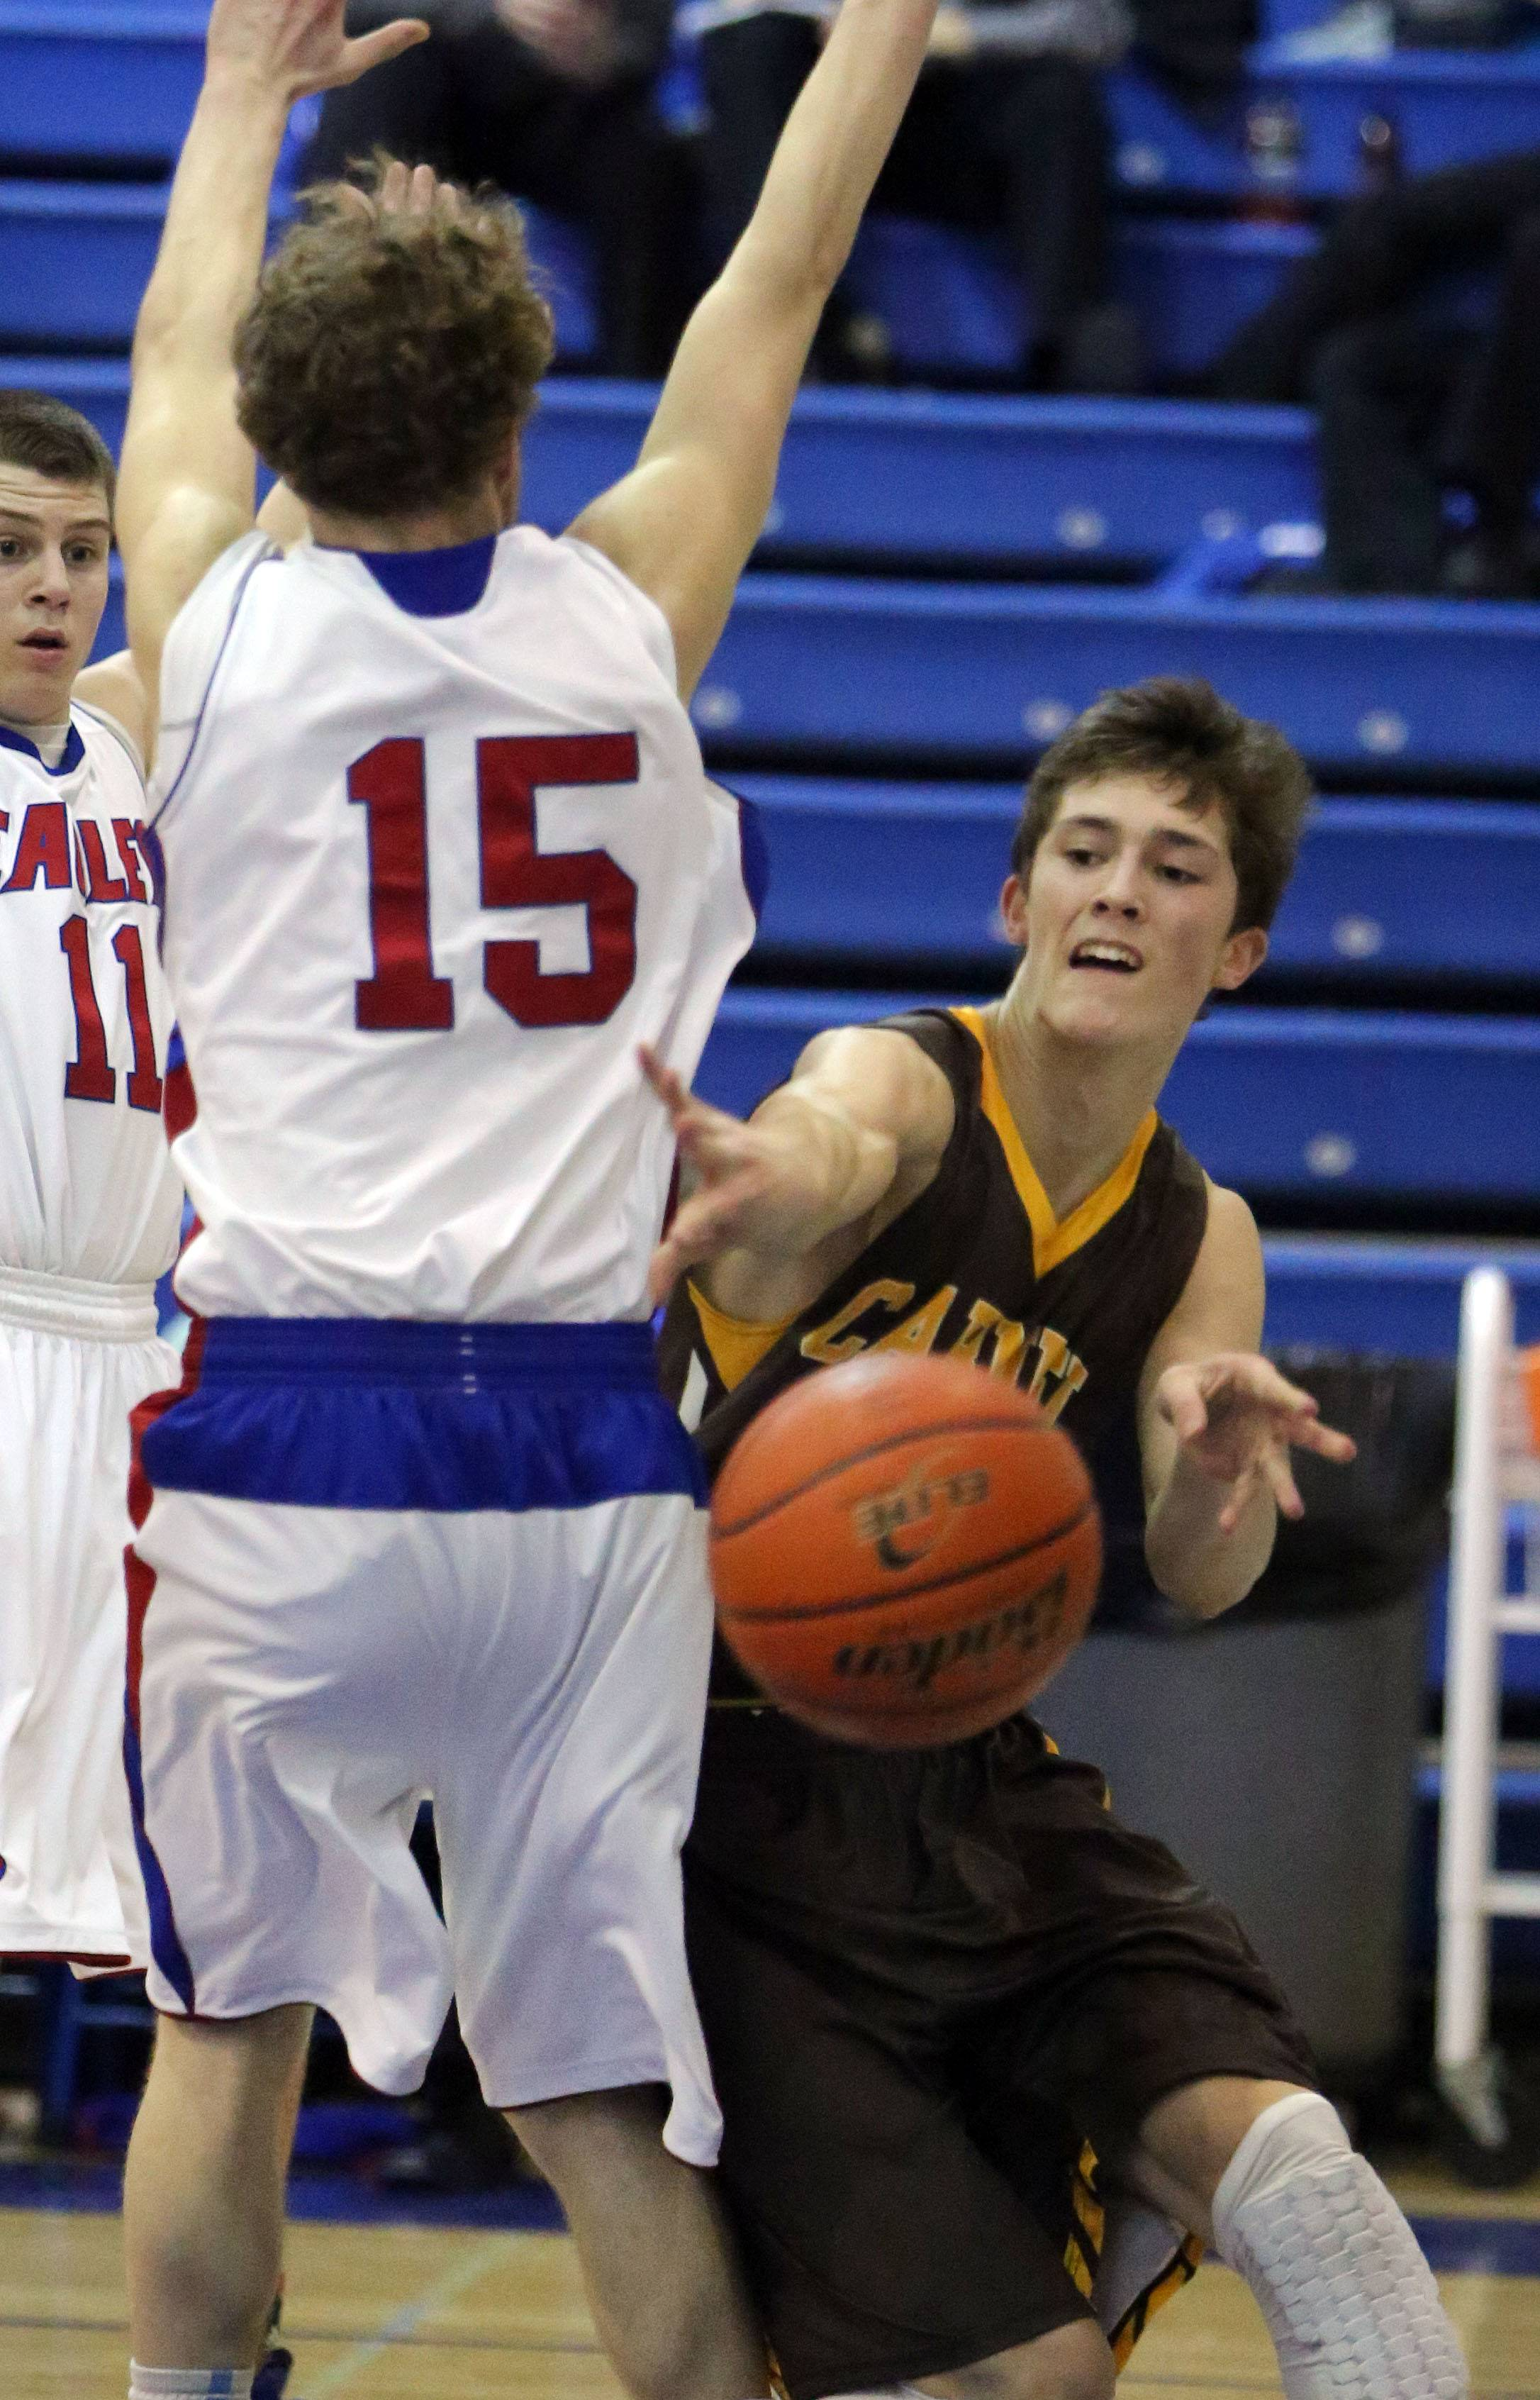 Carmel's Billy Kirby, right, passes around Lakes' Benett Haviland .